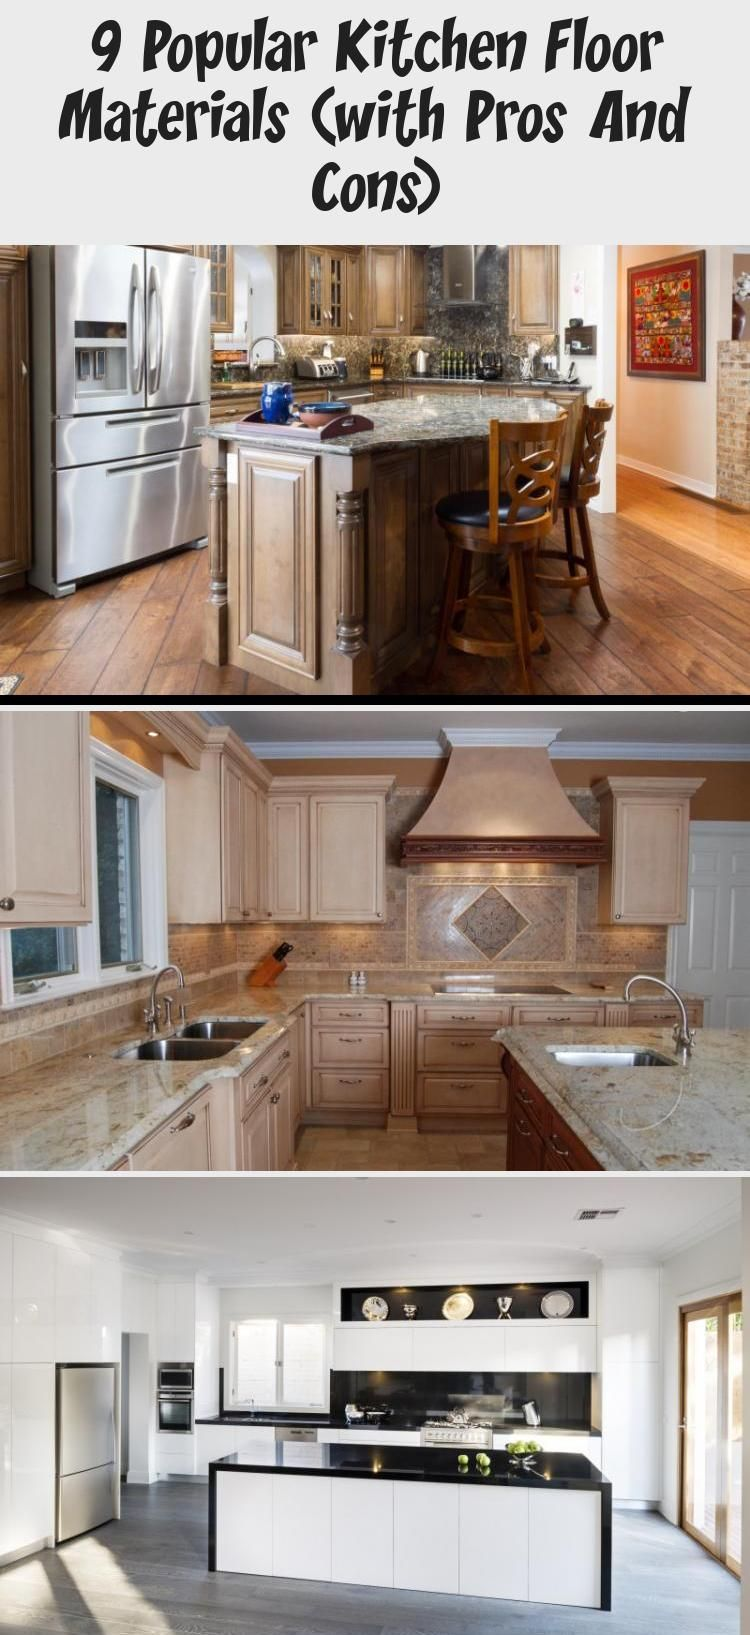 9 Popular Kitchen Floor Materials With Pros And Cons In 2020 Kitchen Flooring Popular Kitchens Kitchen Marble